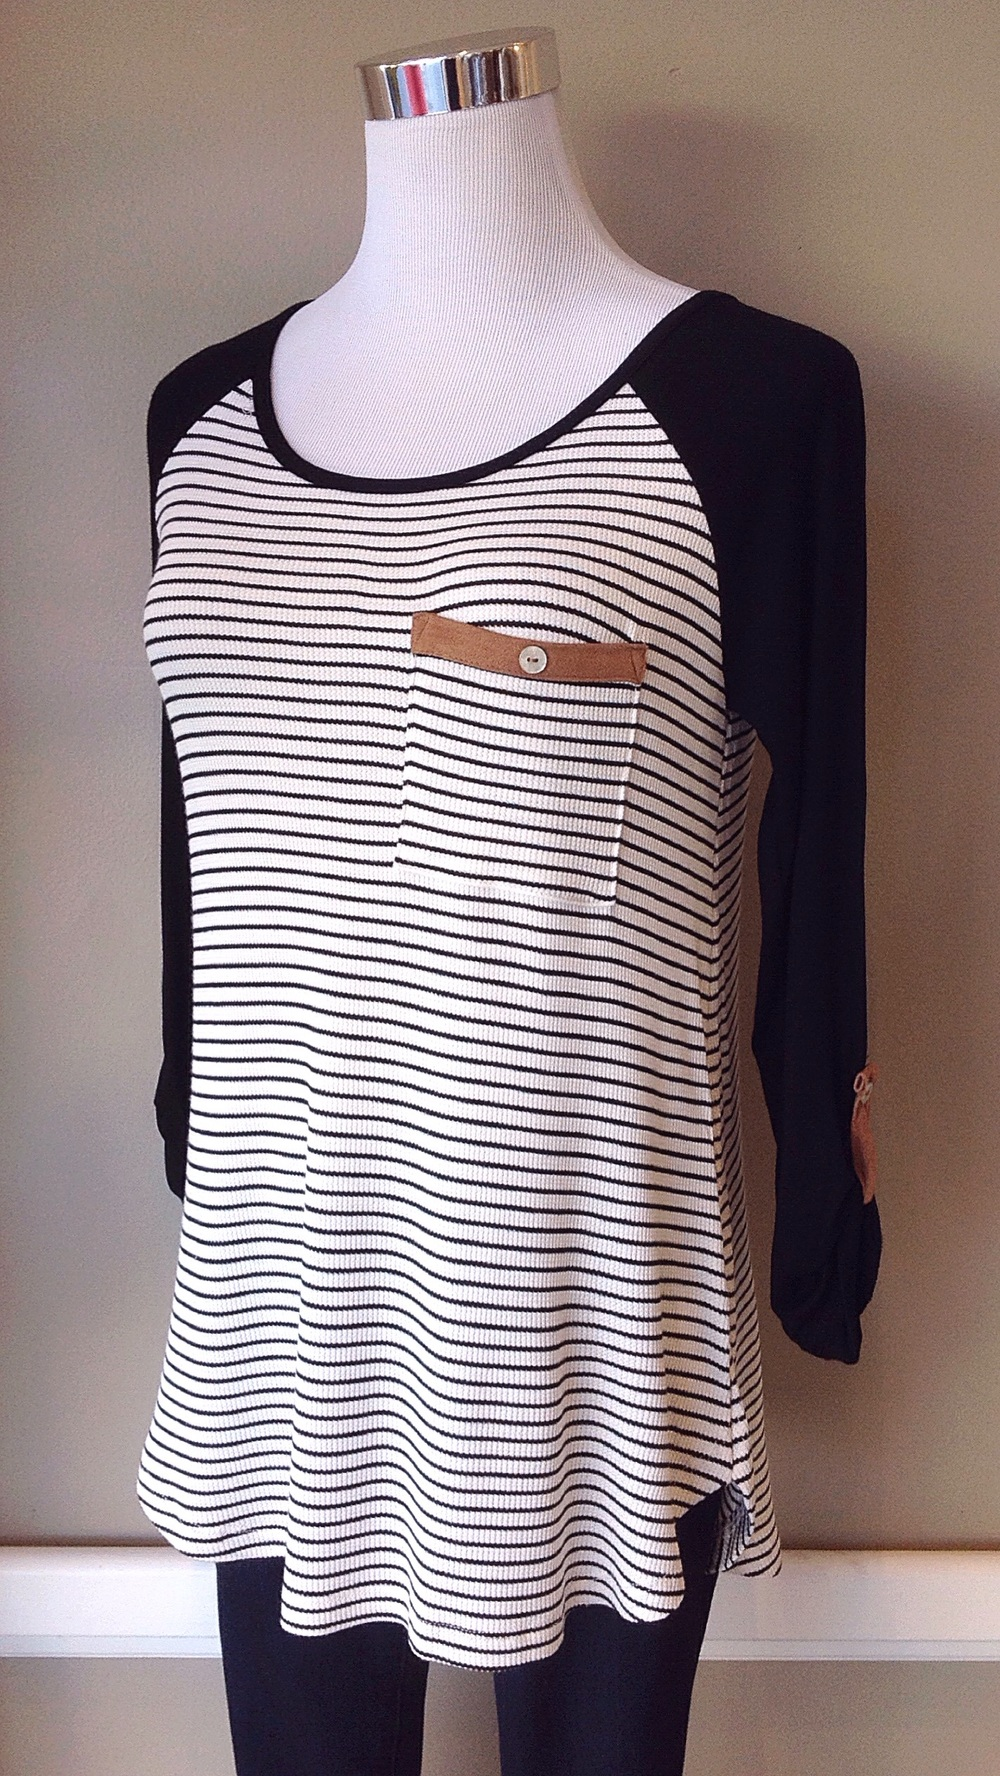 Black and ivory knit baseball top, $32